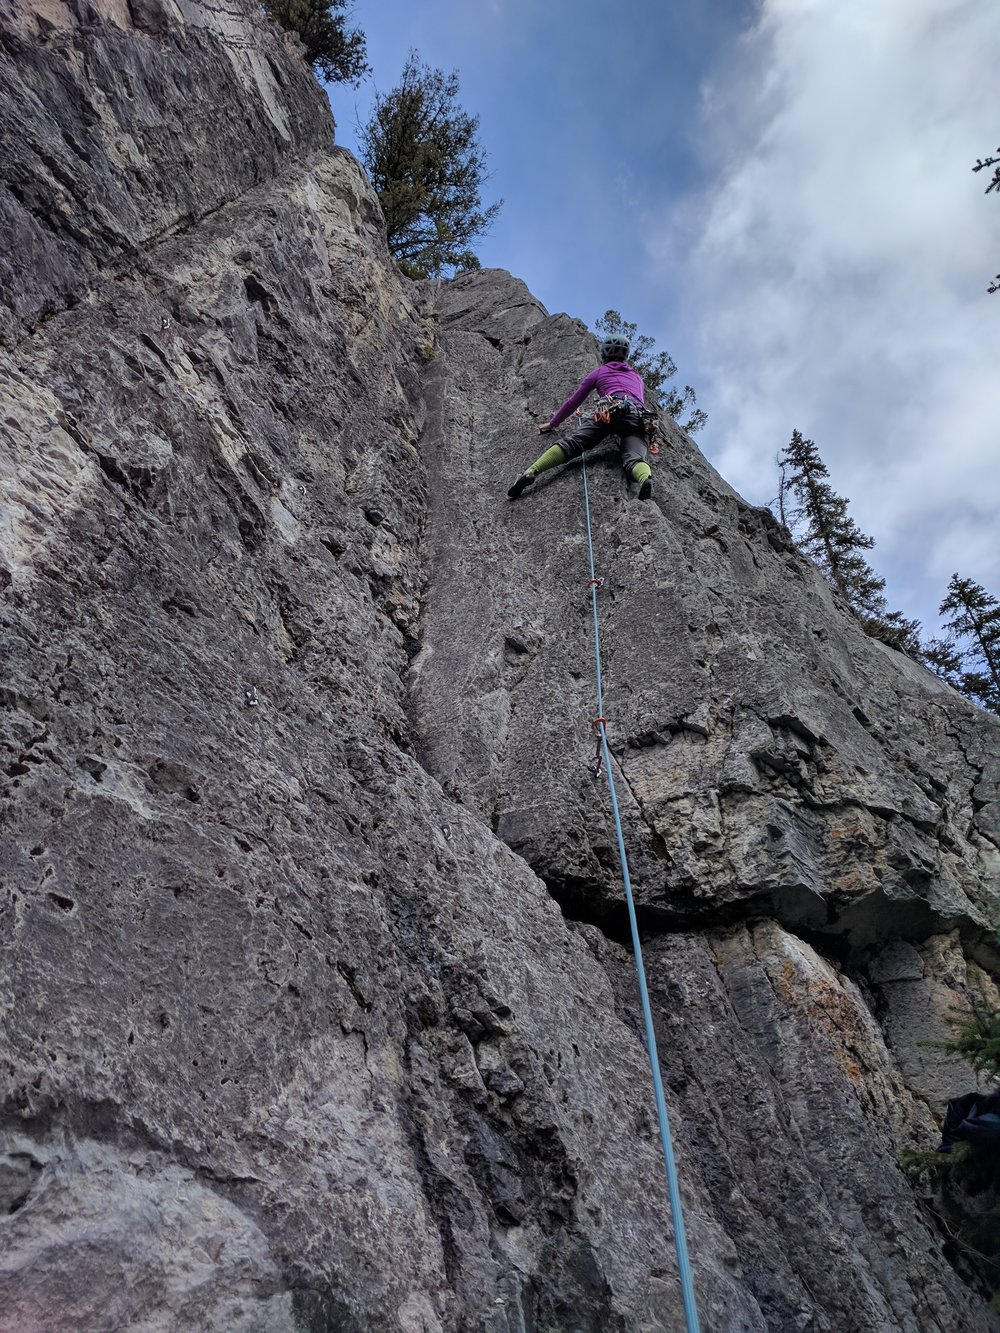 Katherine leads up the Tri Star Arete in great early season conditions.